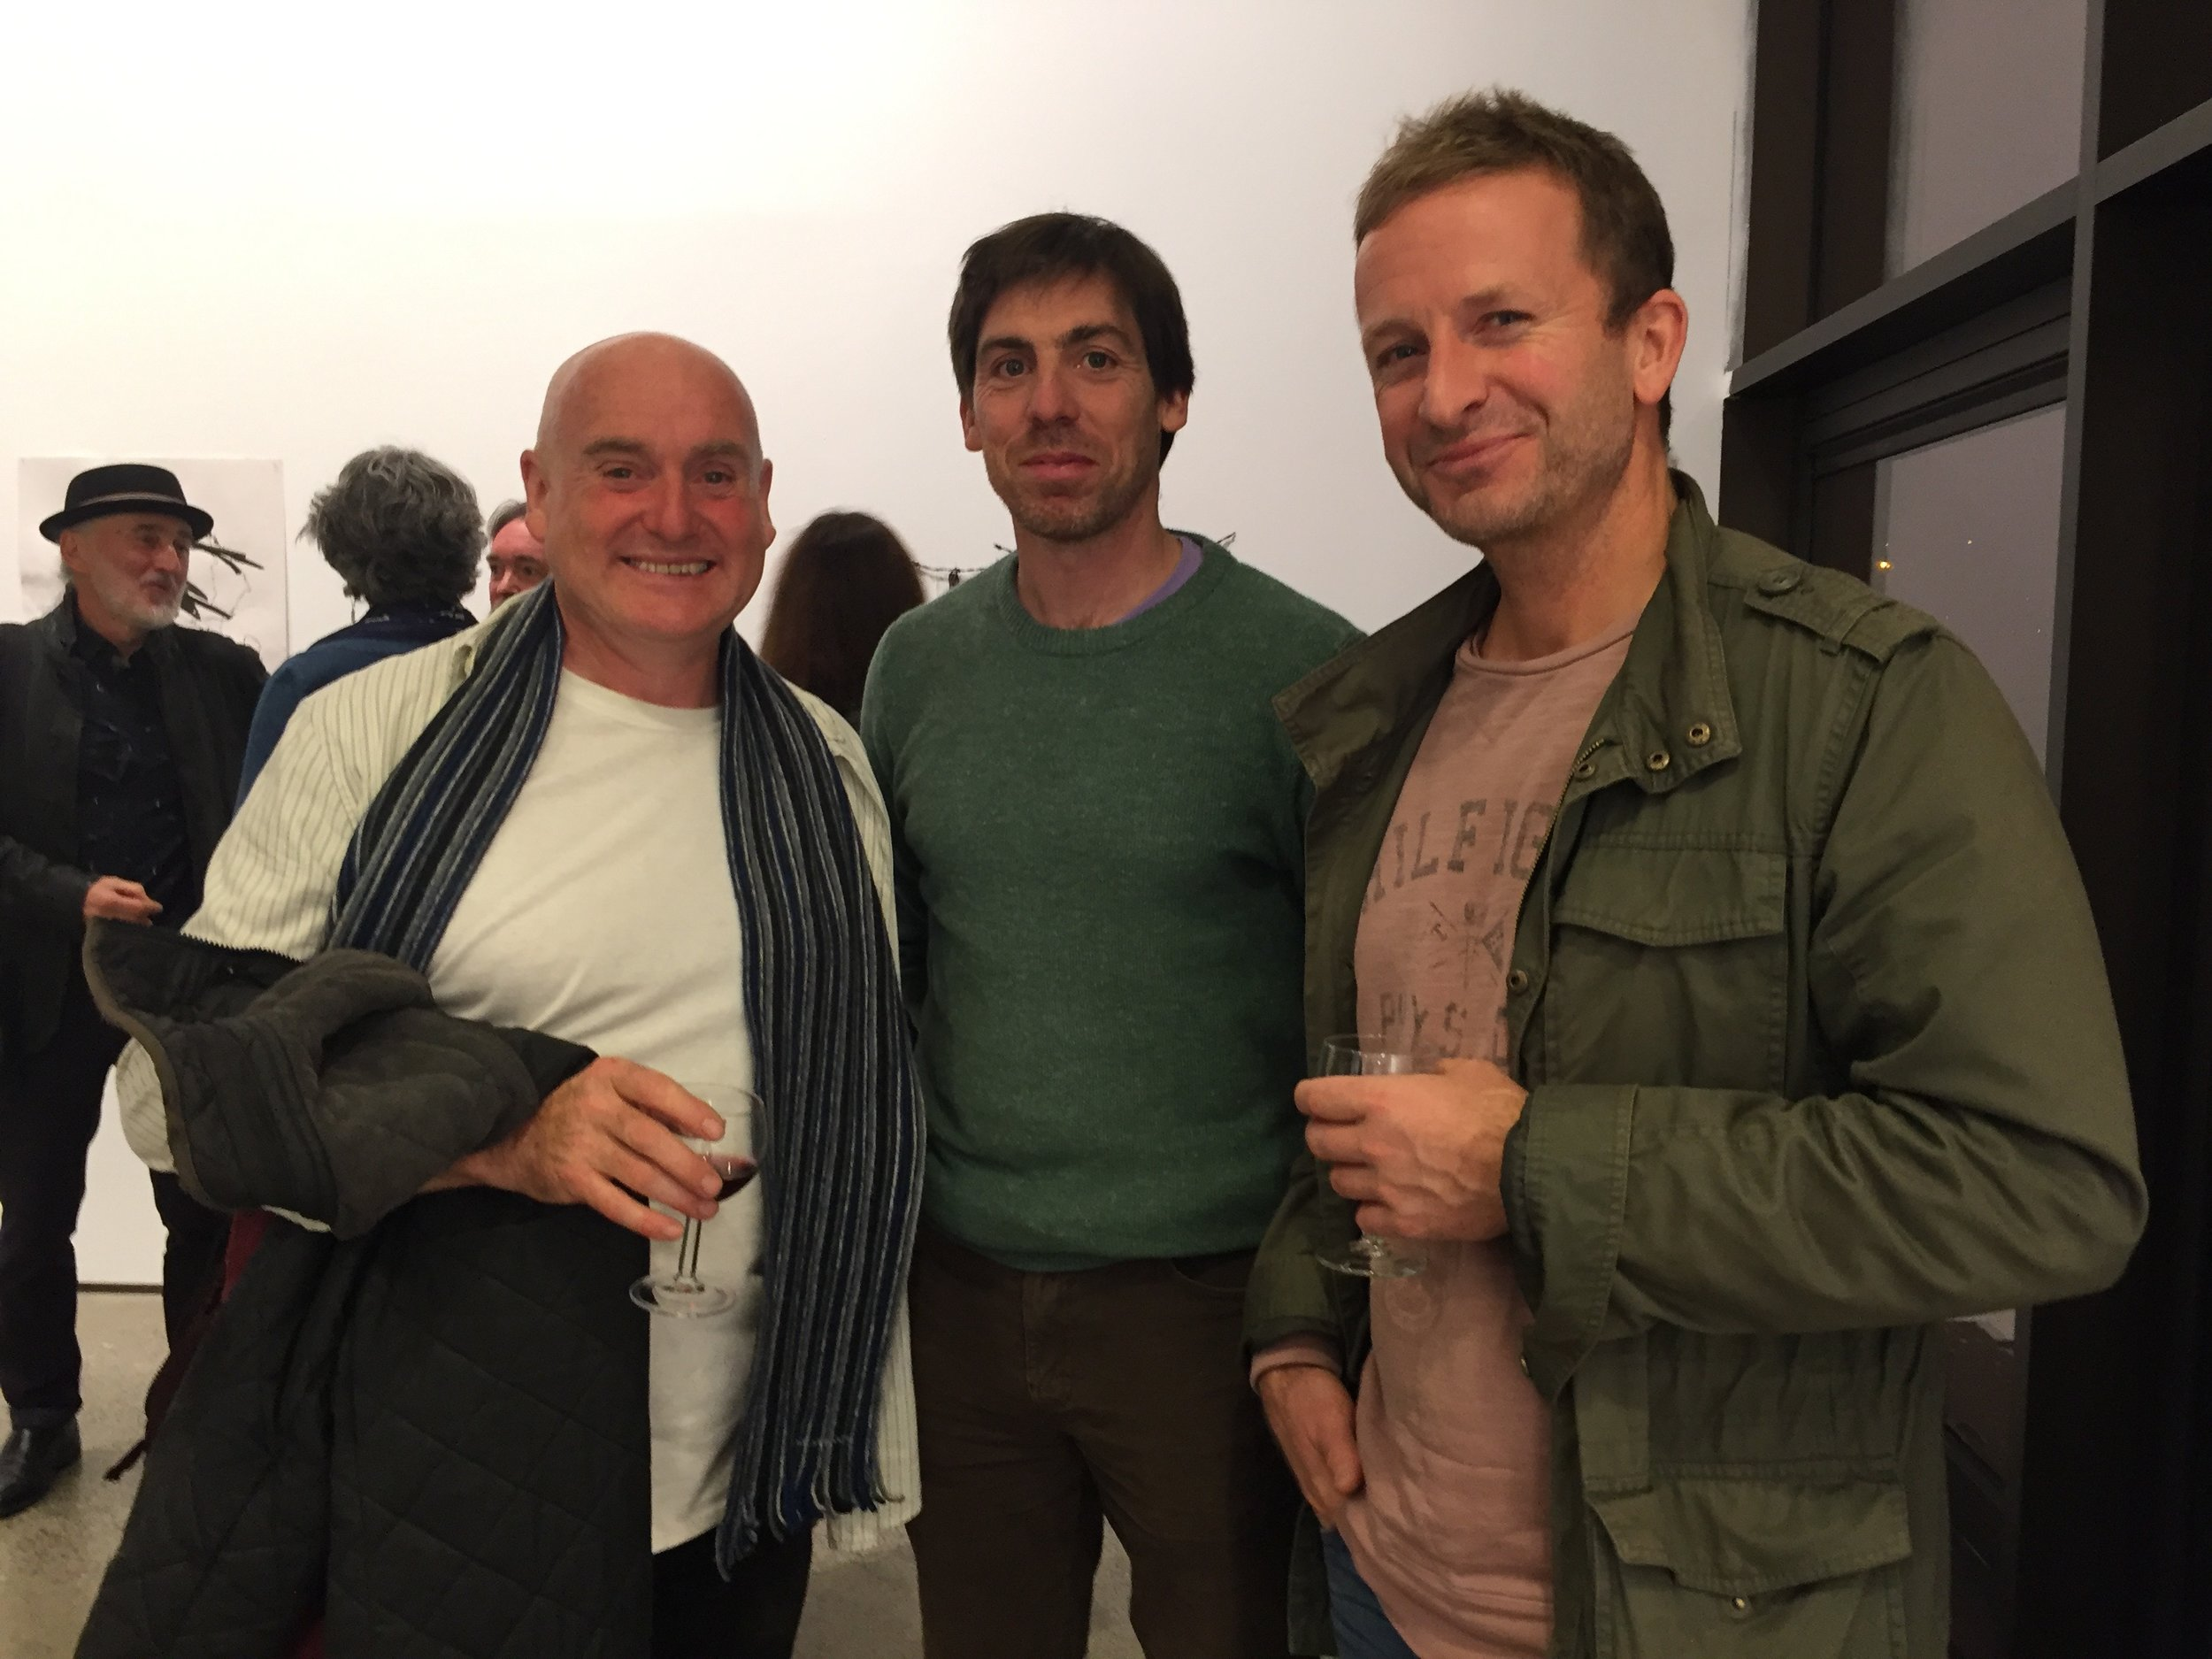 Donagh meeting up with sculptor Moss Gaynor and painter Michael McSwiney